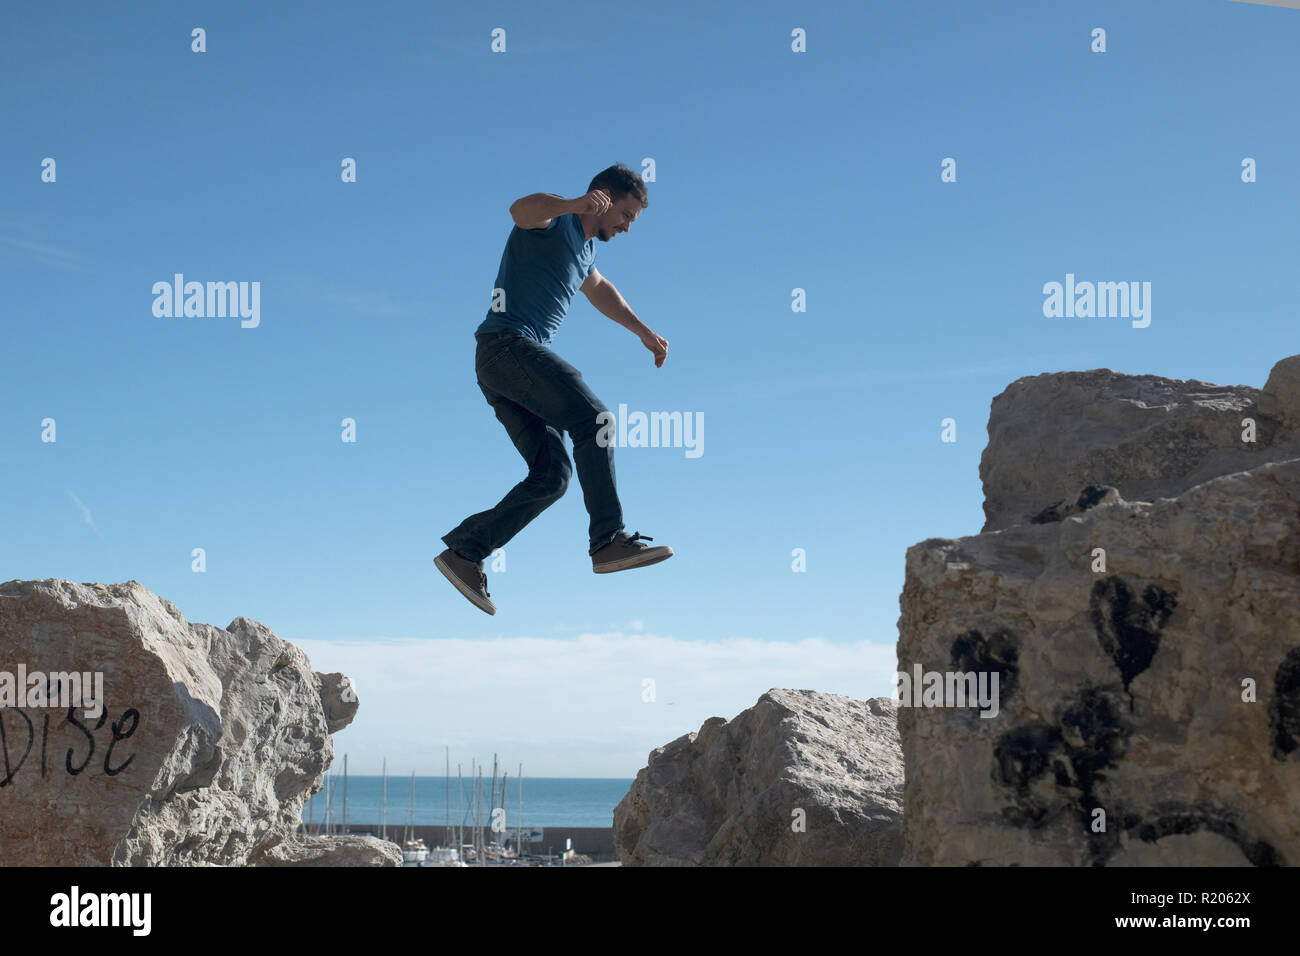 Young man leaping across rocks in Garaff Spain - Stock Image